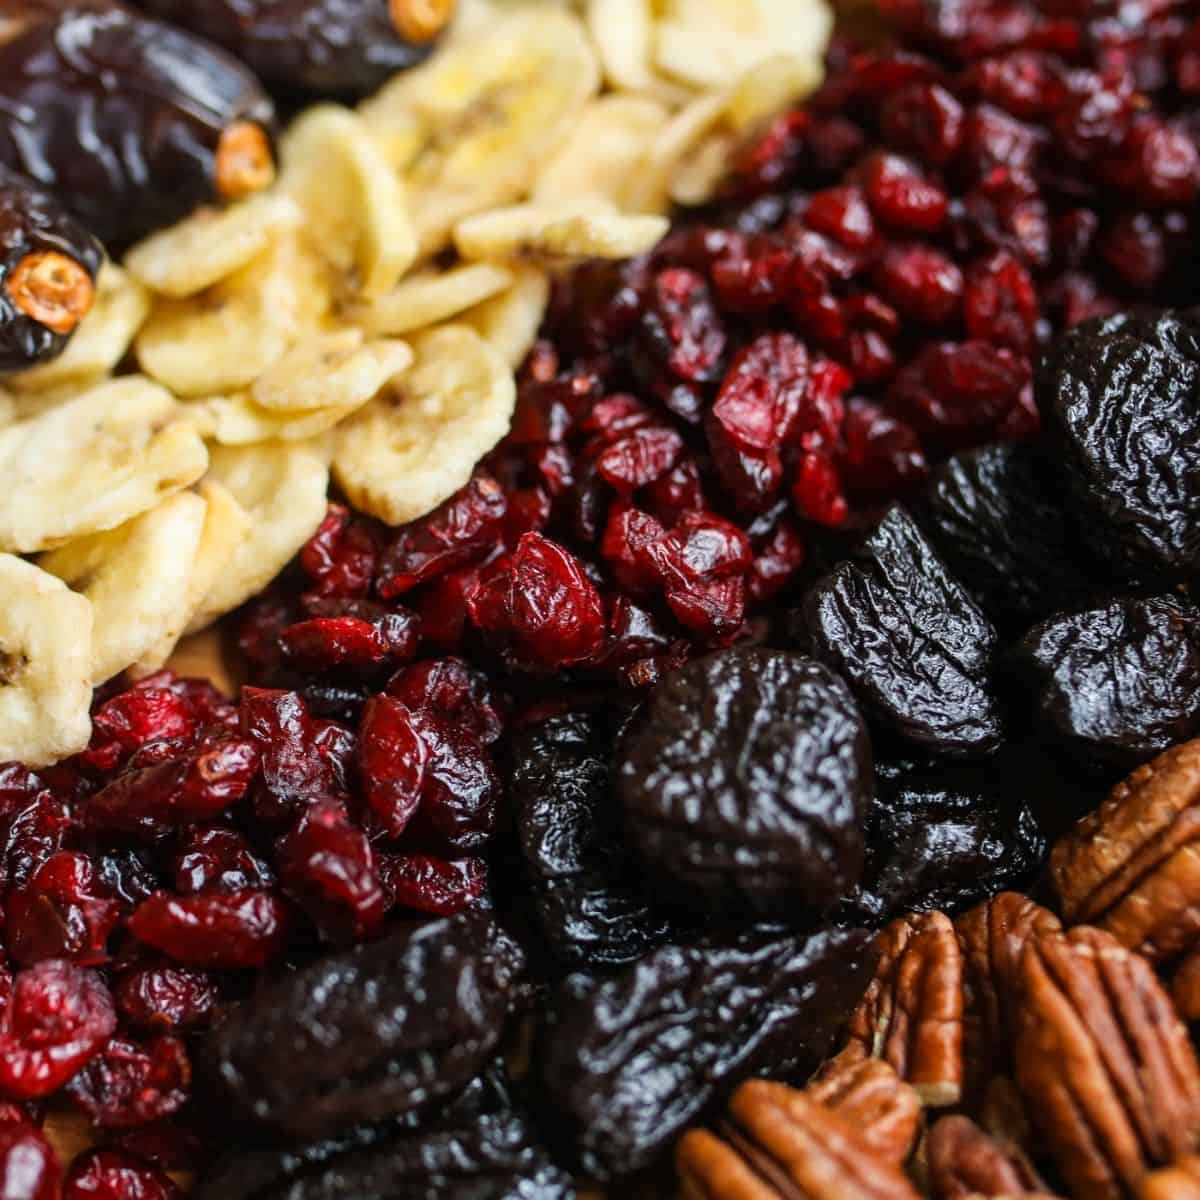 dried fruit: cranberries, dried cherries, banana chips, and pecans